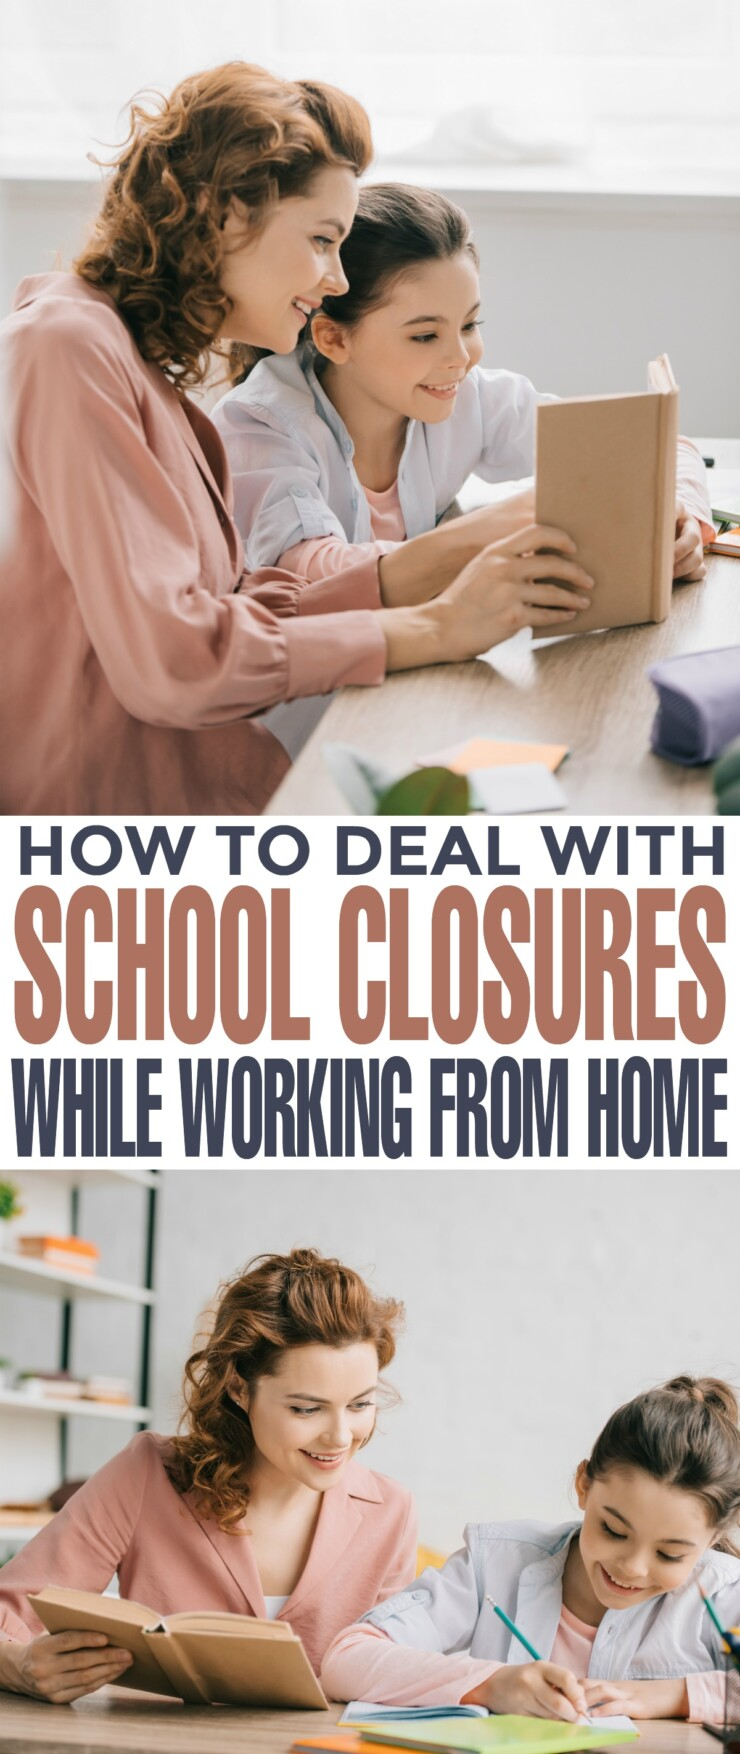 How to Deal with School Closures while Working from Home